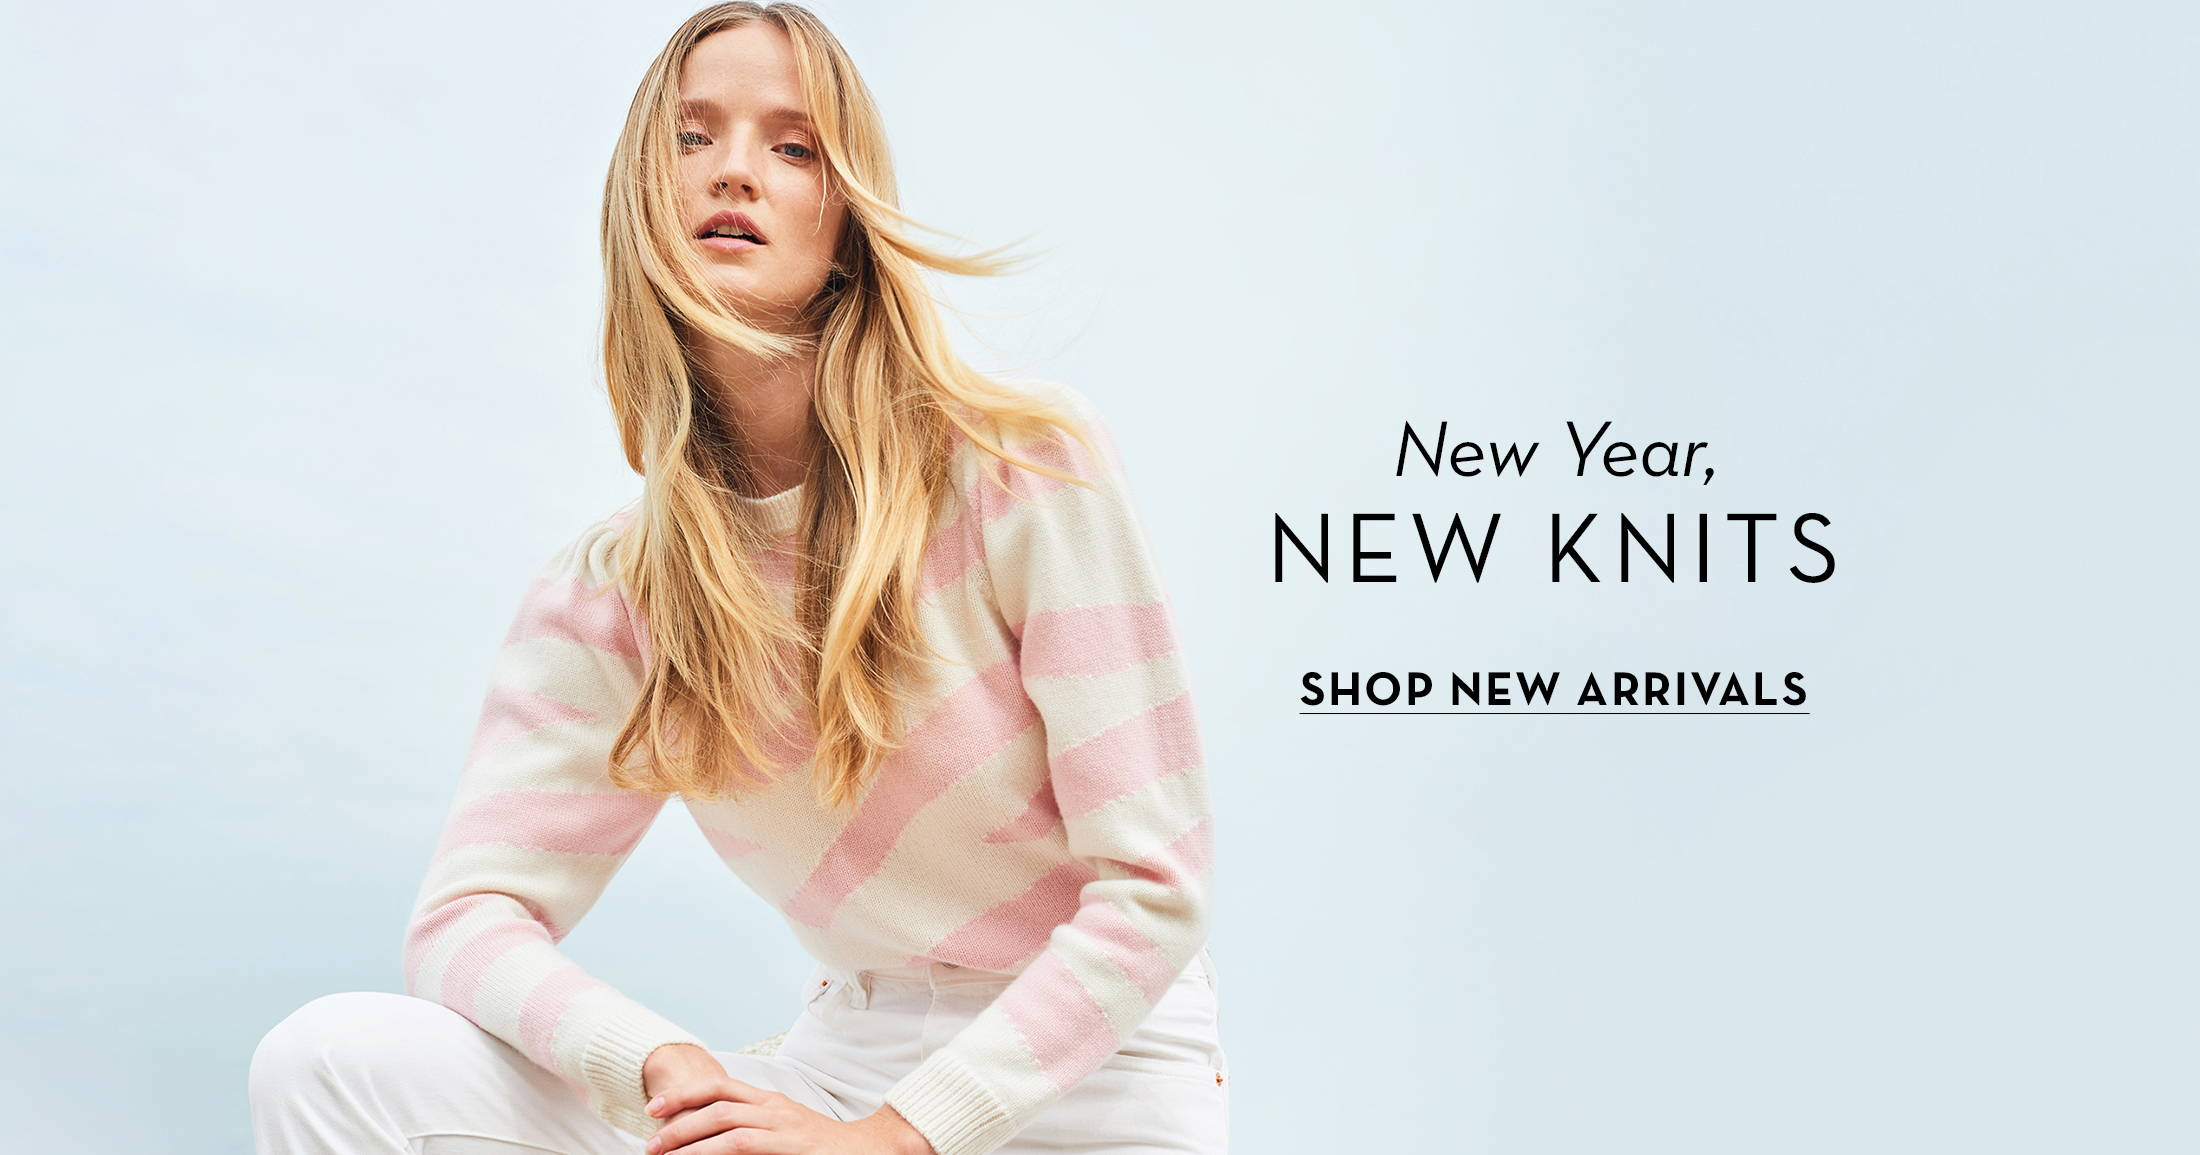 New Year New Knits, Shop New Arrivals